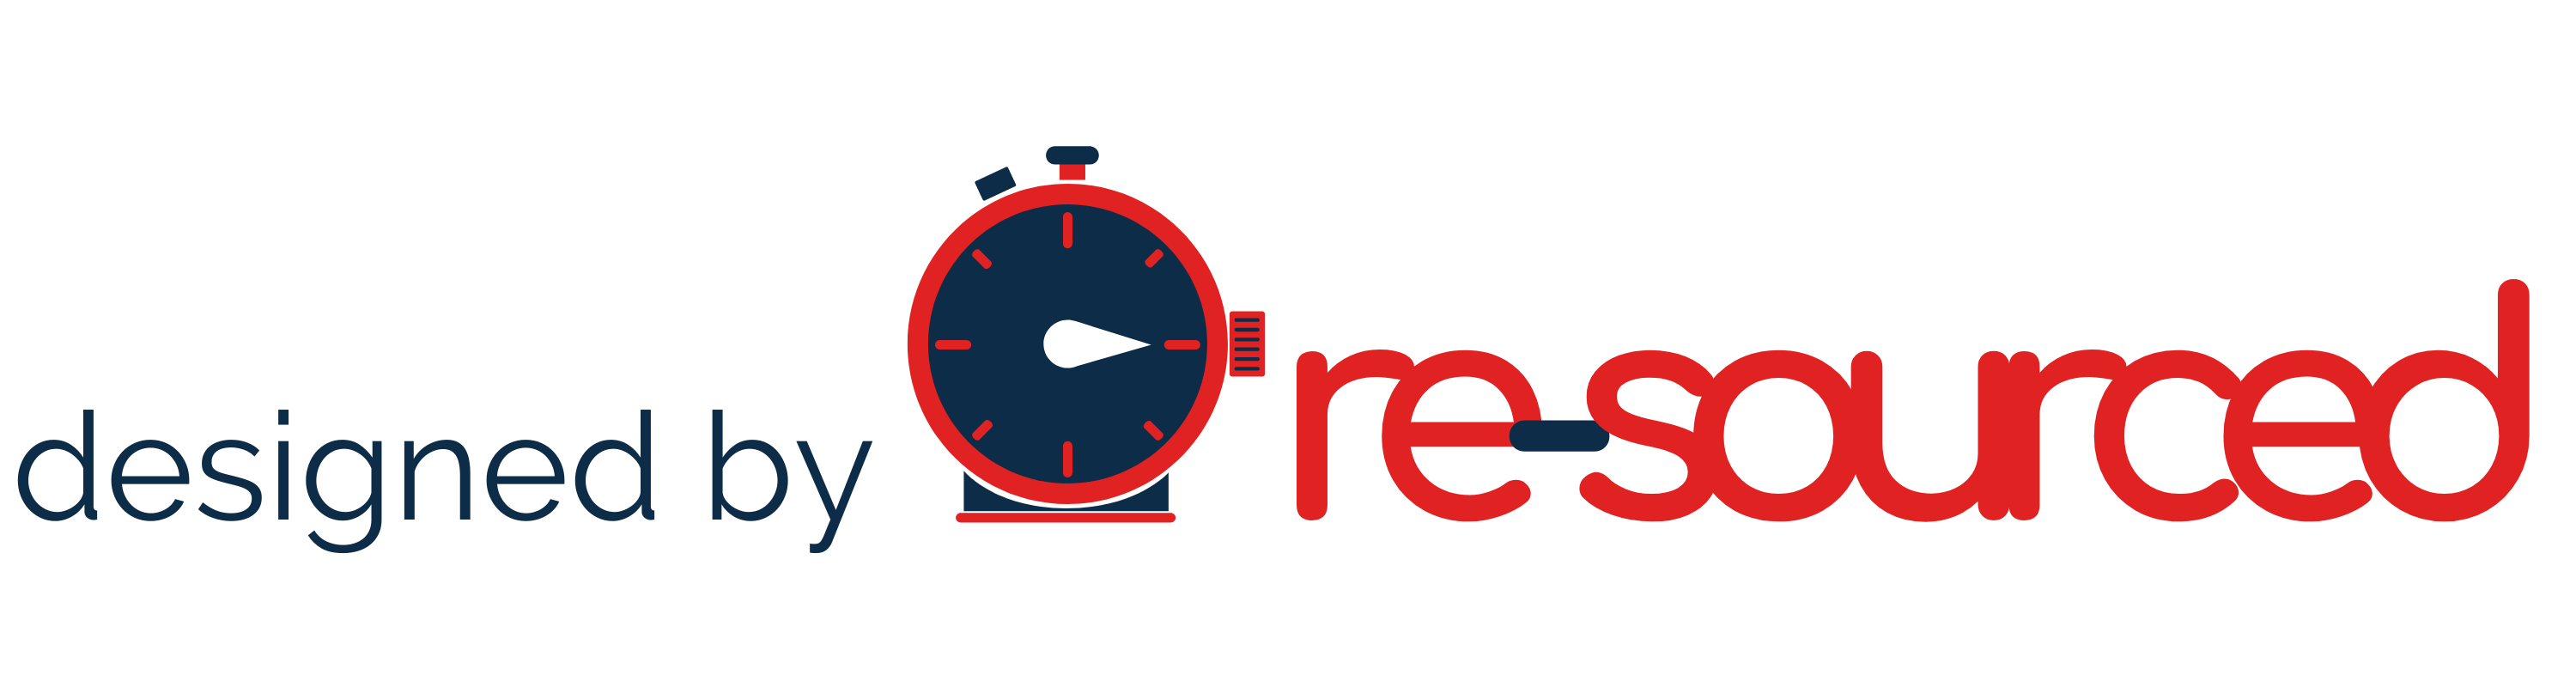 designed by Re-sourced